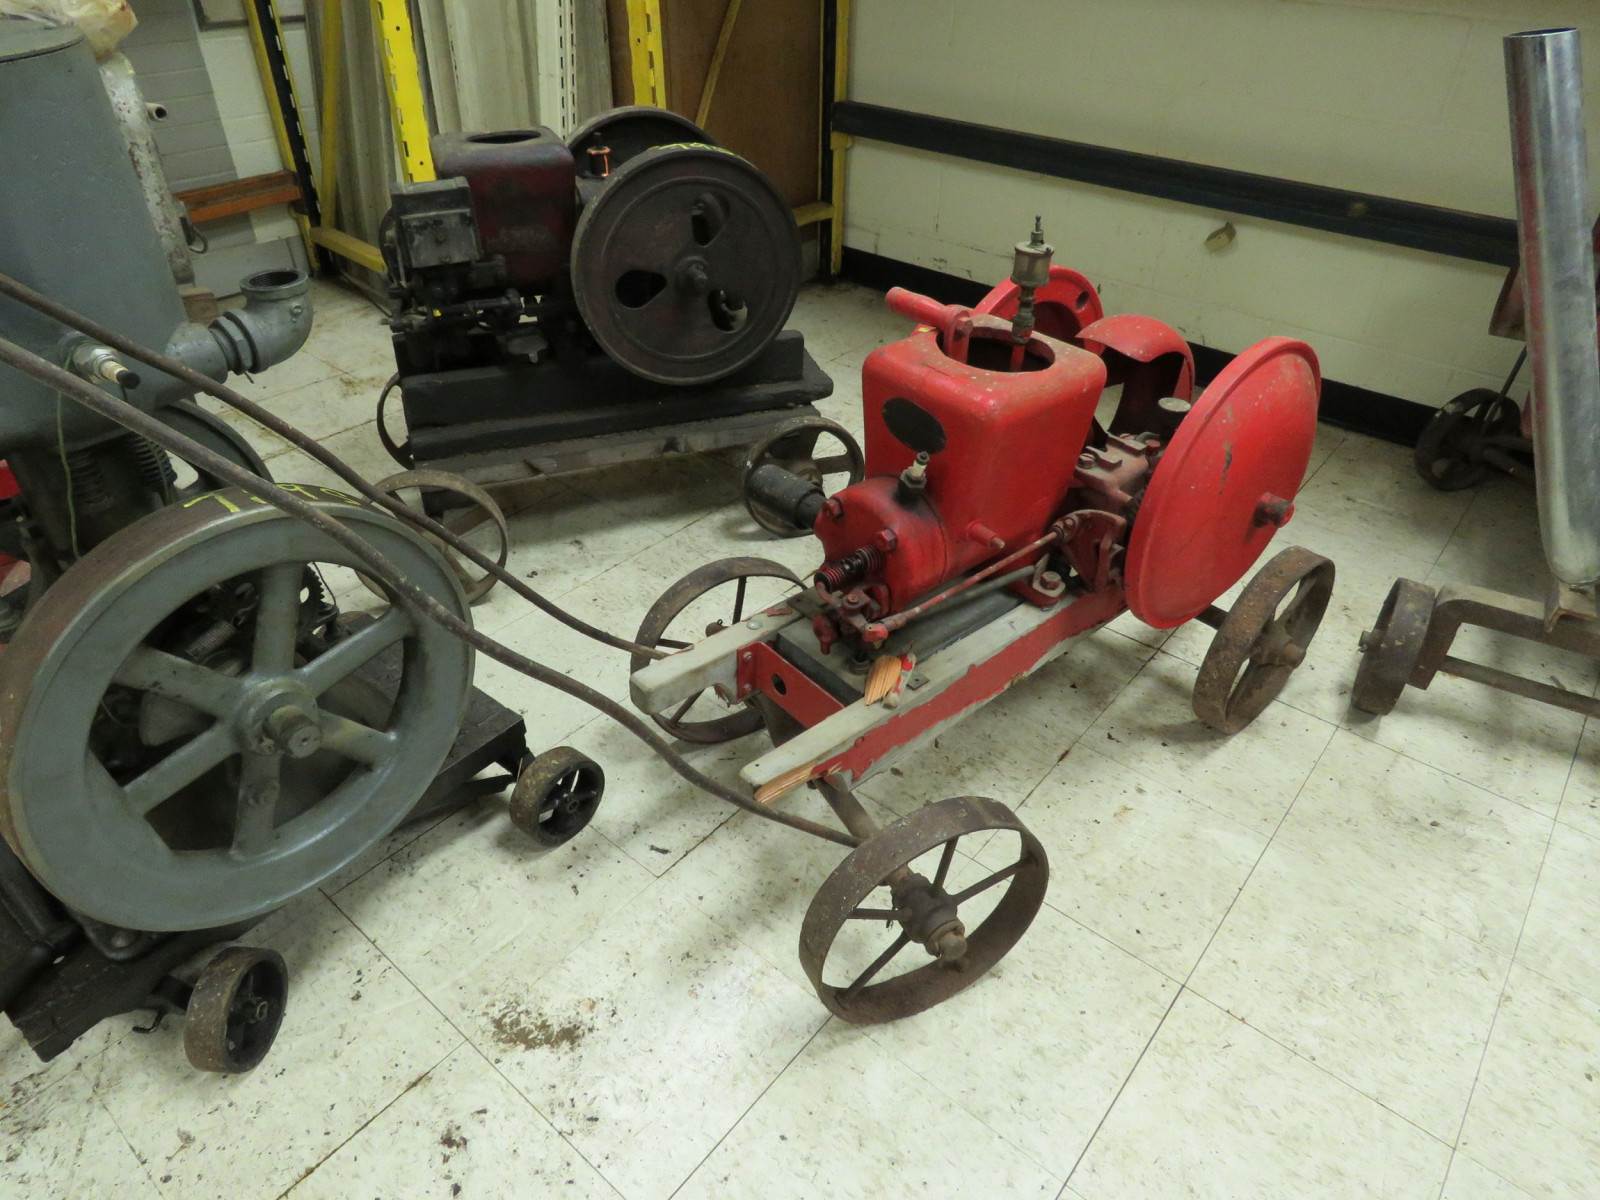 Fairbanks Morse Type Z 1 1/2 HP Stationary Gas Engine - Image 2